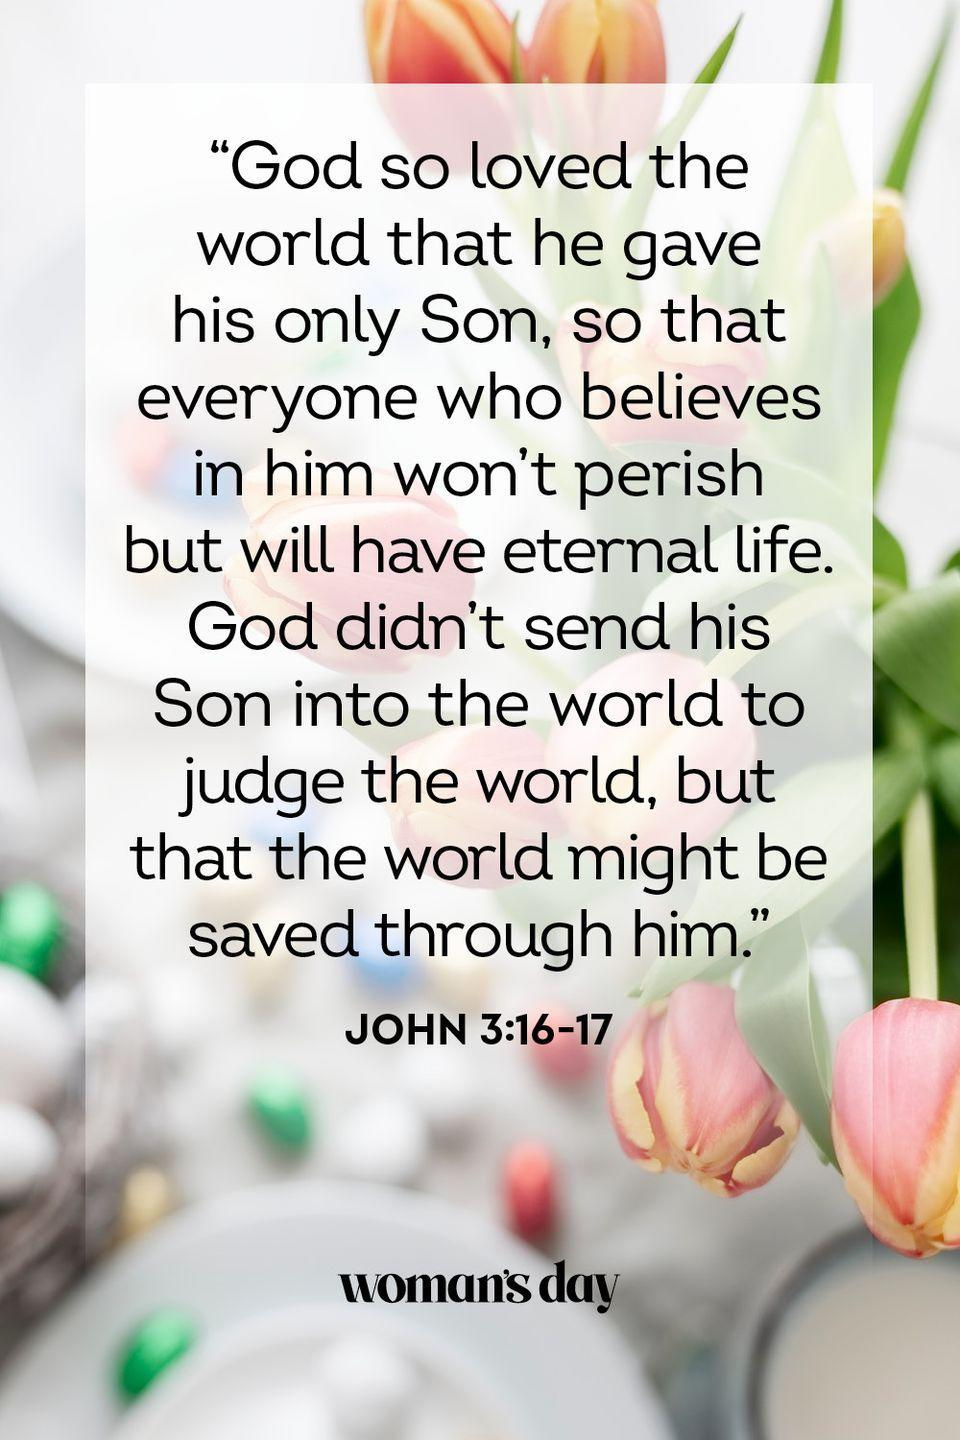 "<p>""God so loved the world that he gave his only Son, so that everyone who believes in him won't perish but will have eternal life. God didn't send his Son into the world to judge the world, but that the world might be saved through him."" — John 3:16-17</p>"